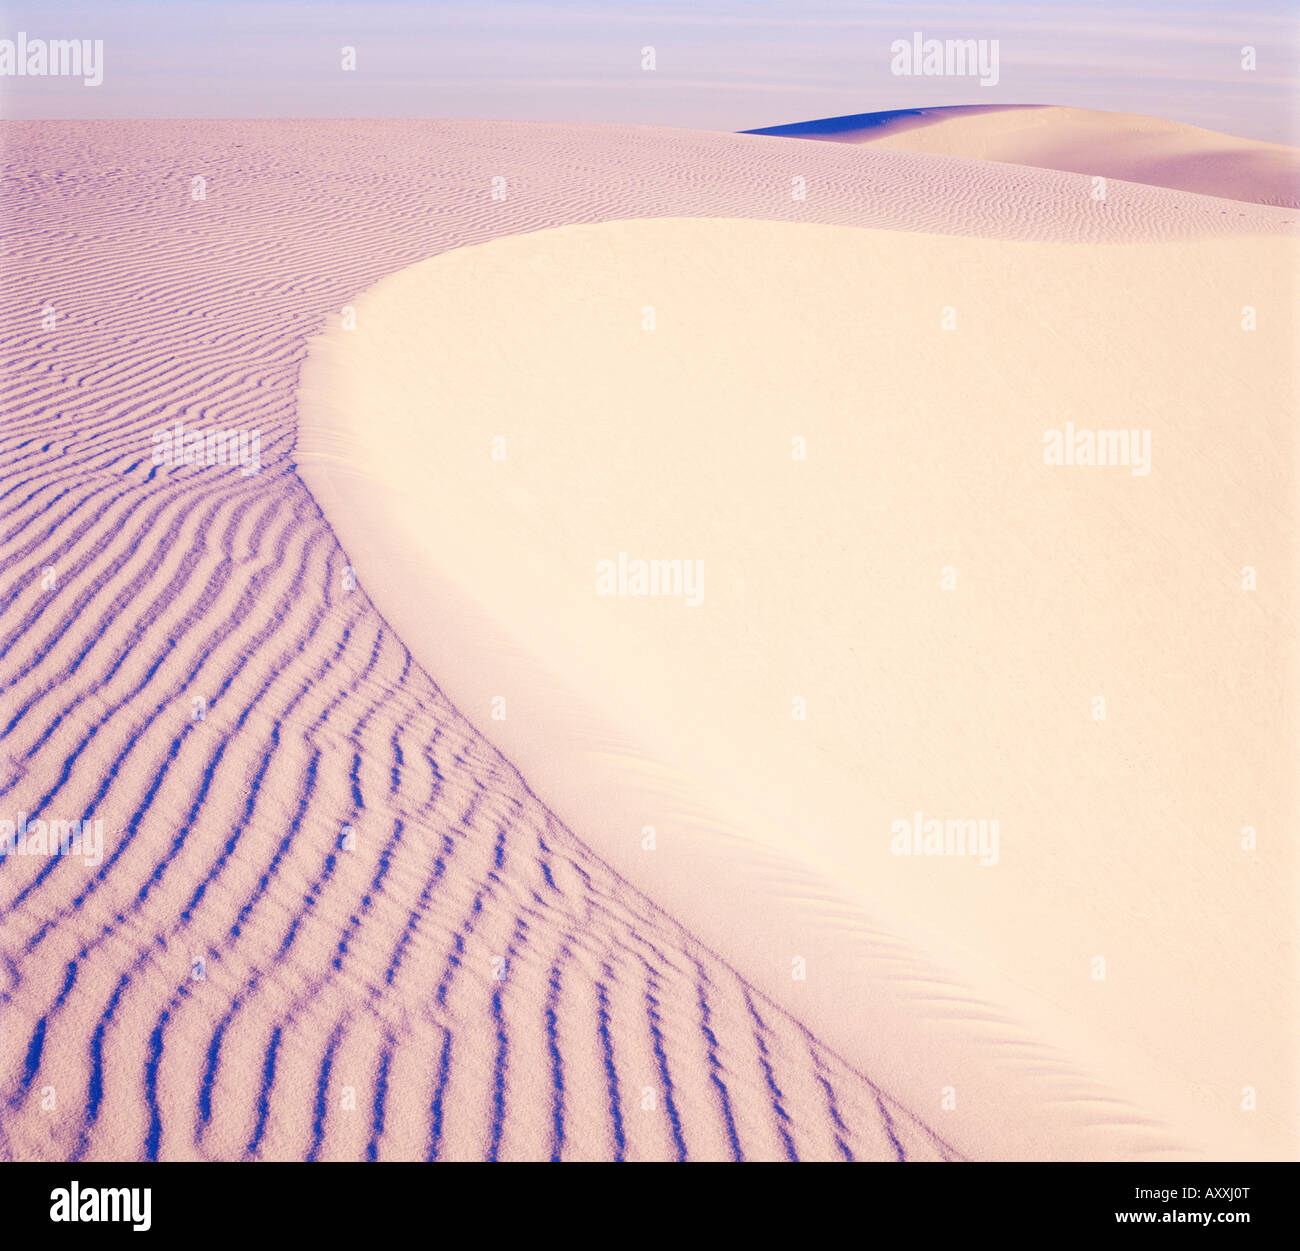 Dunes, White Sands National Park, New Mexico, United States of America (U.S.A.), North America - Stock Image